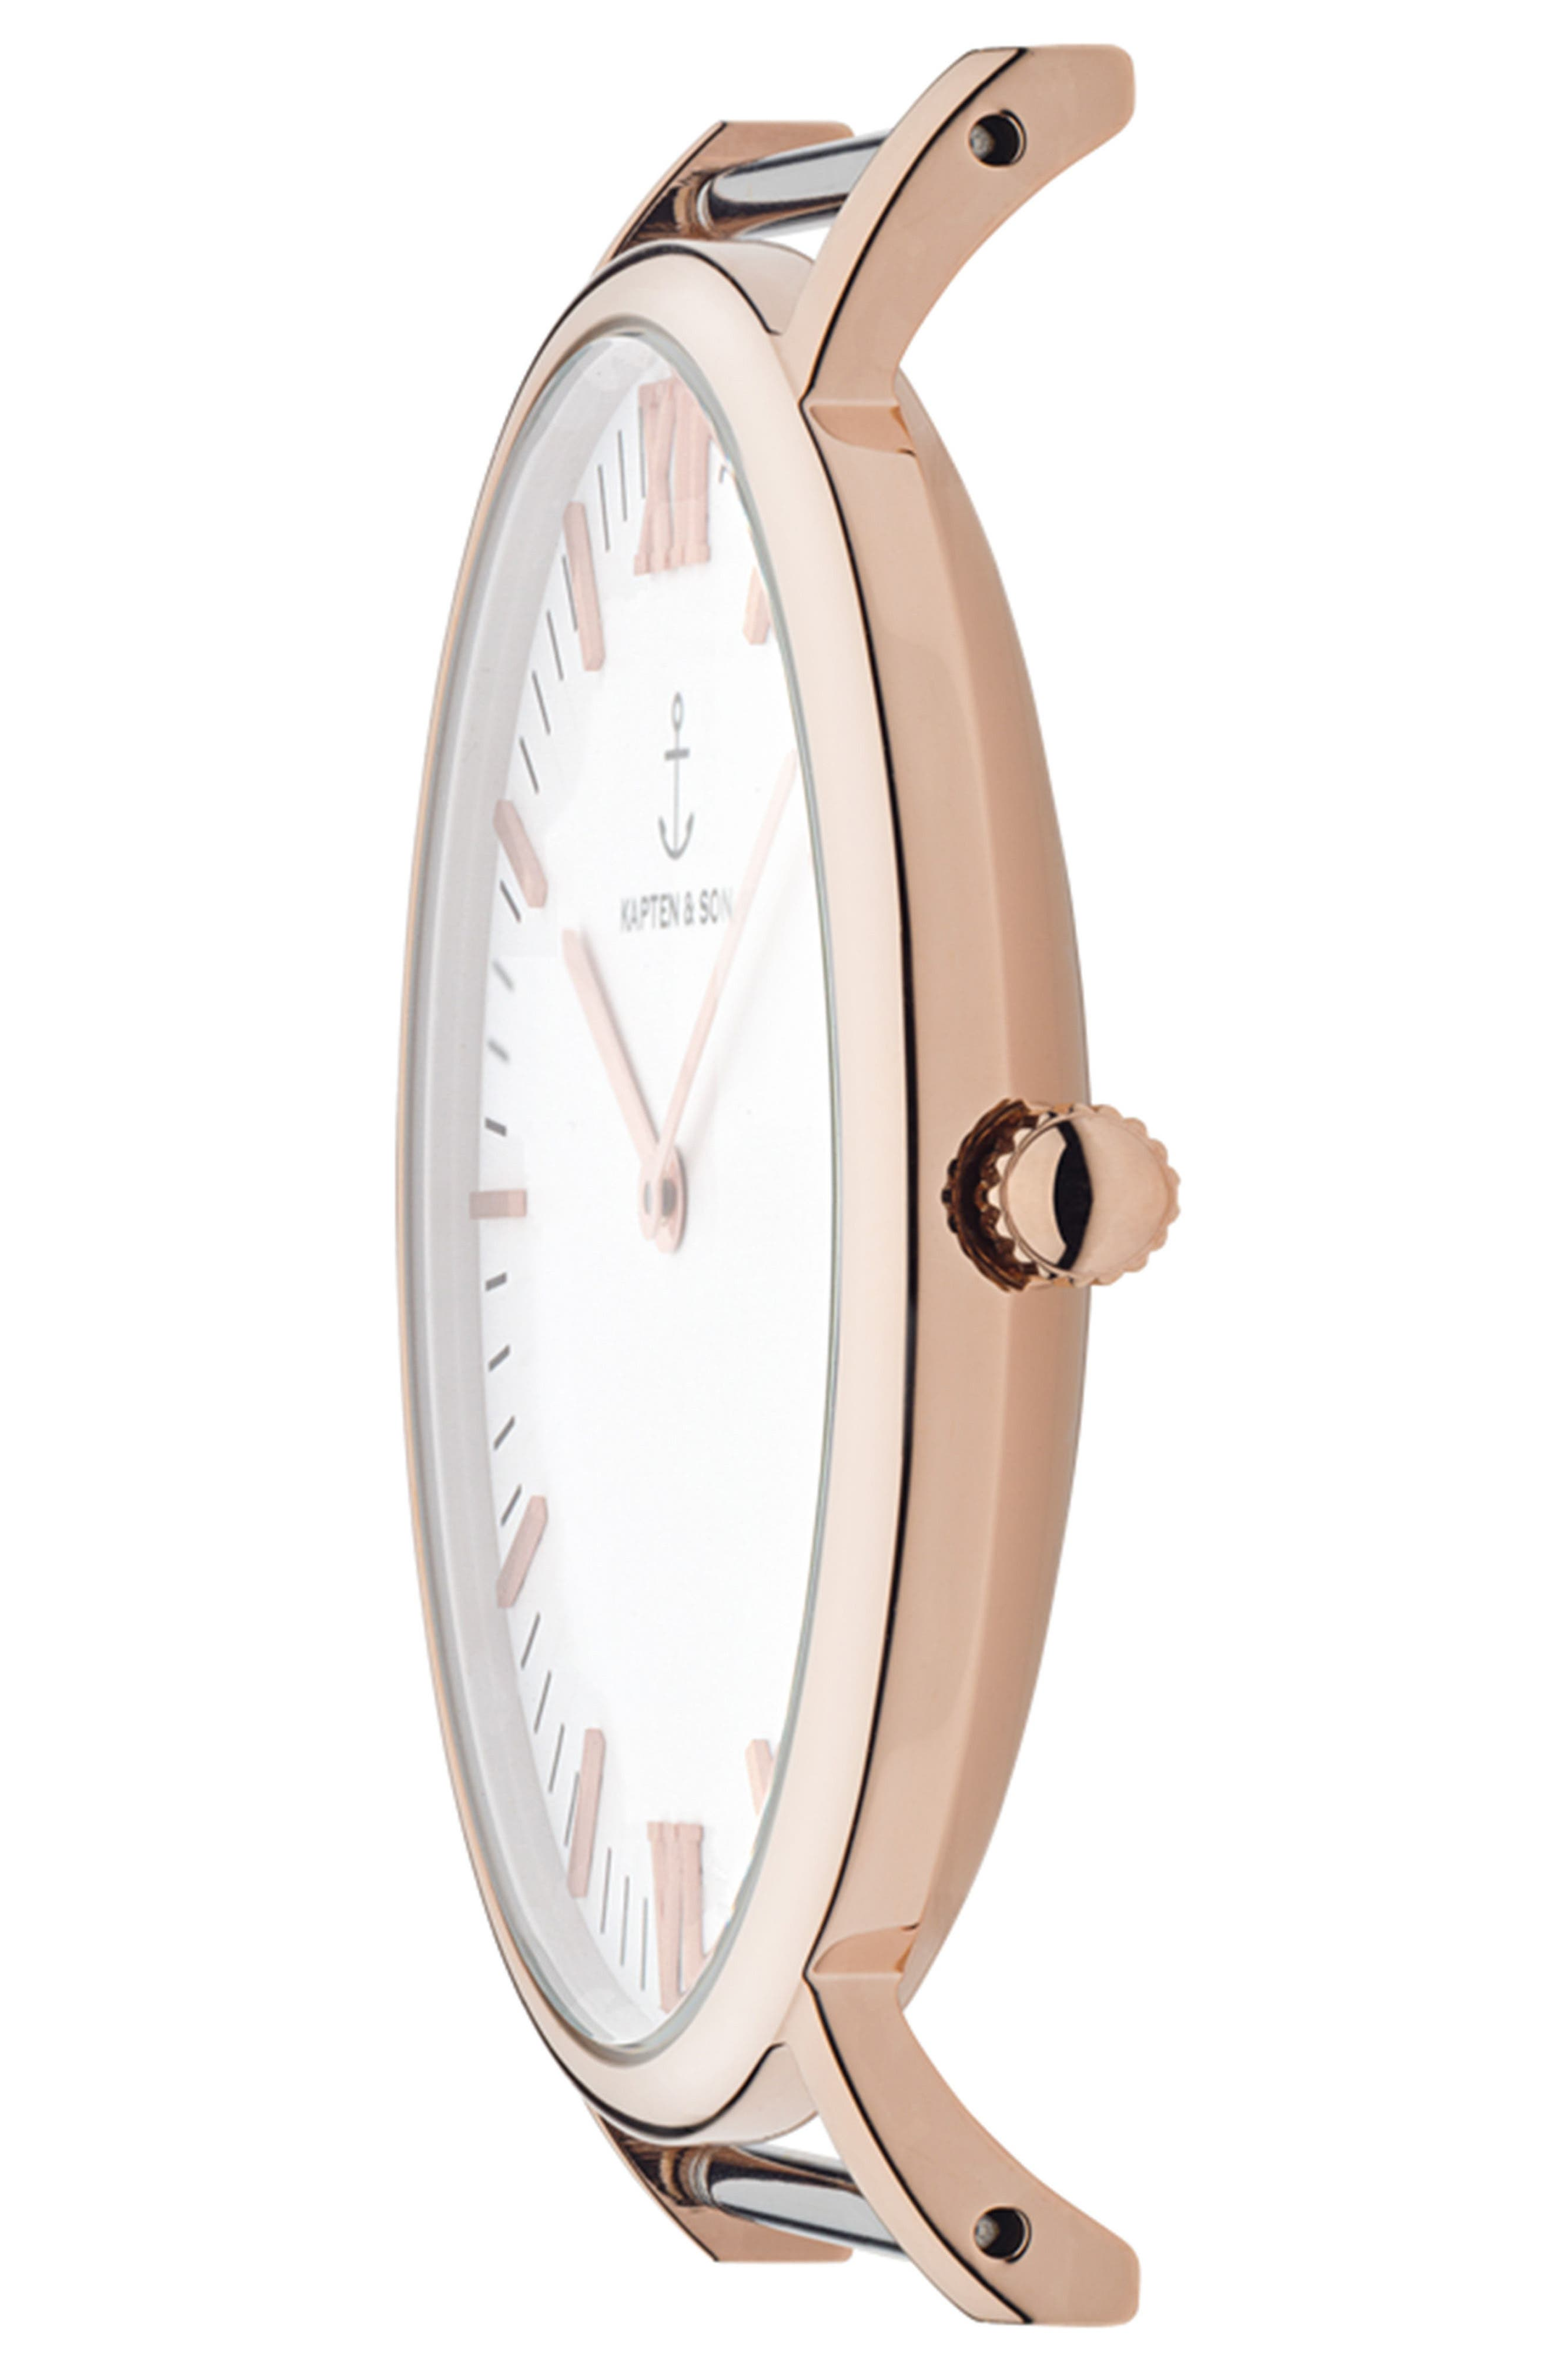 Campus Canvas Strap Watch, 40mm,                             Alternate thumbnail 3, color,                             Grey/White/Rose Gold